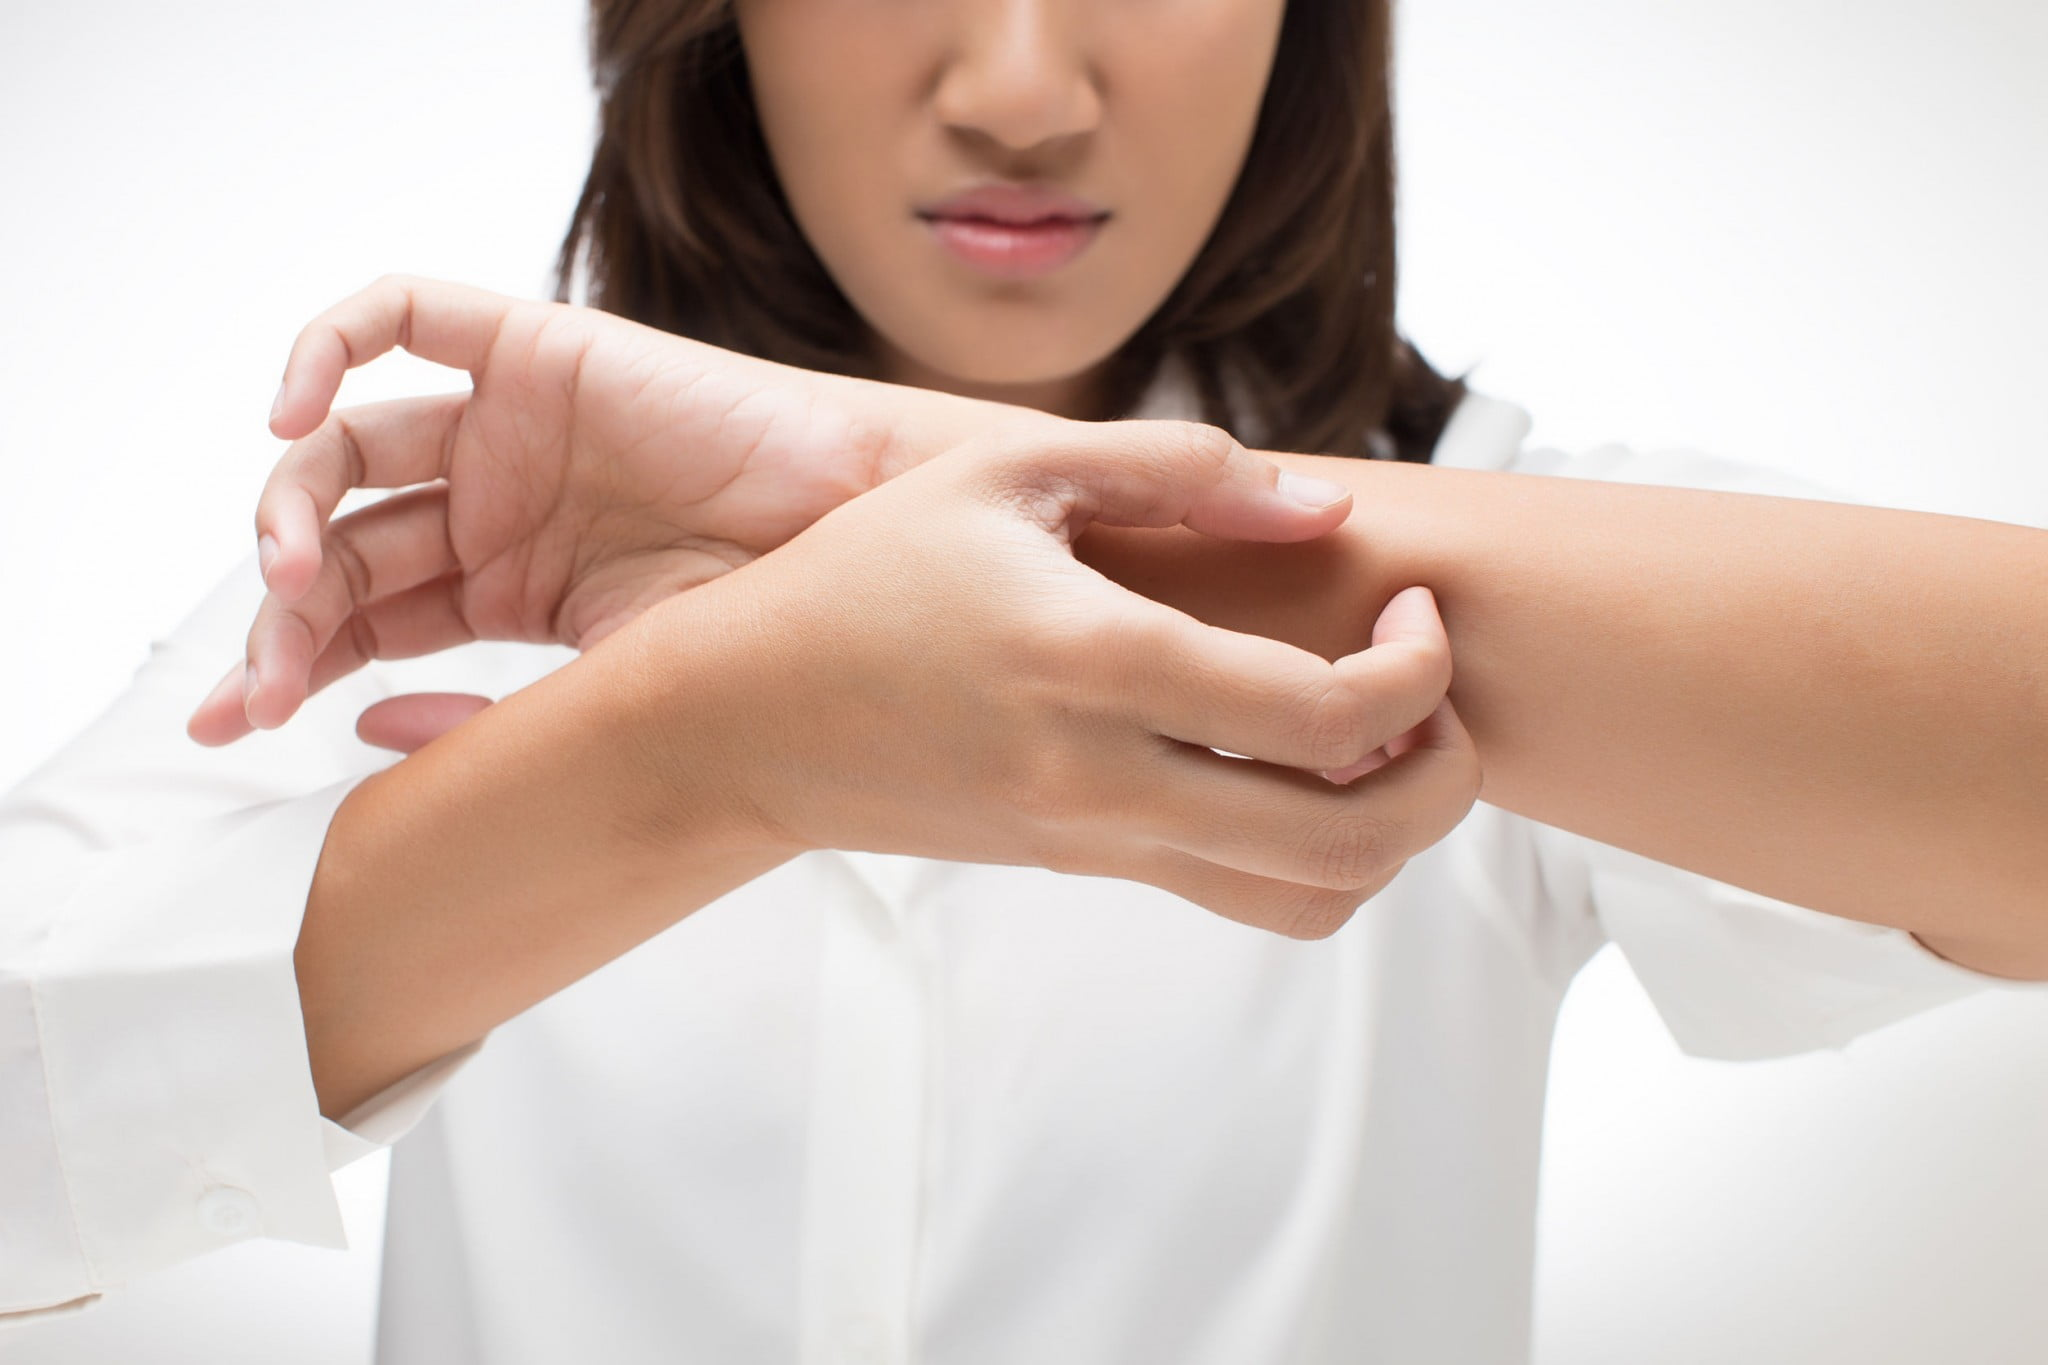 woman scratching arm - skin allergy